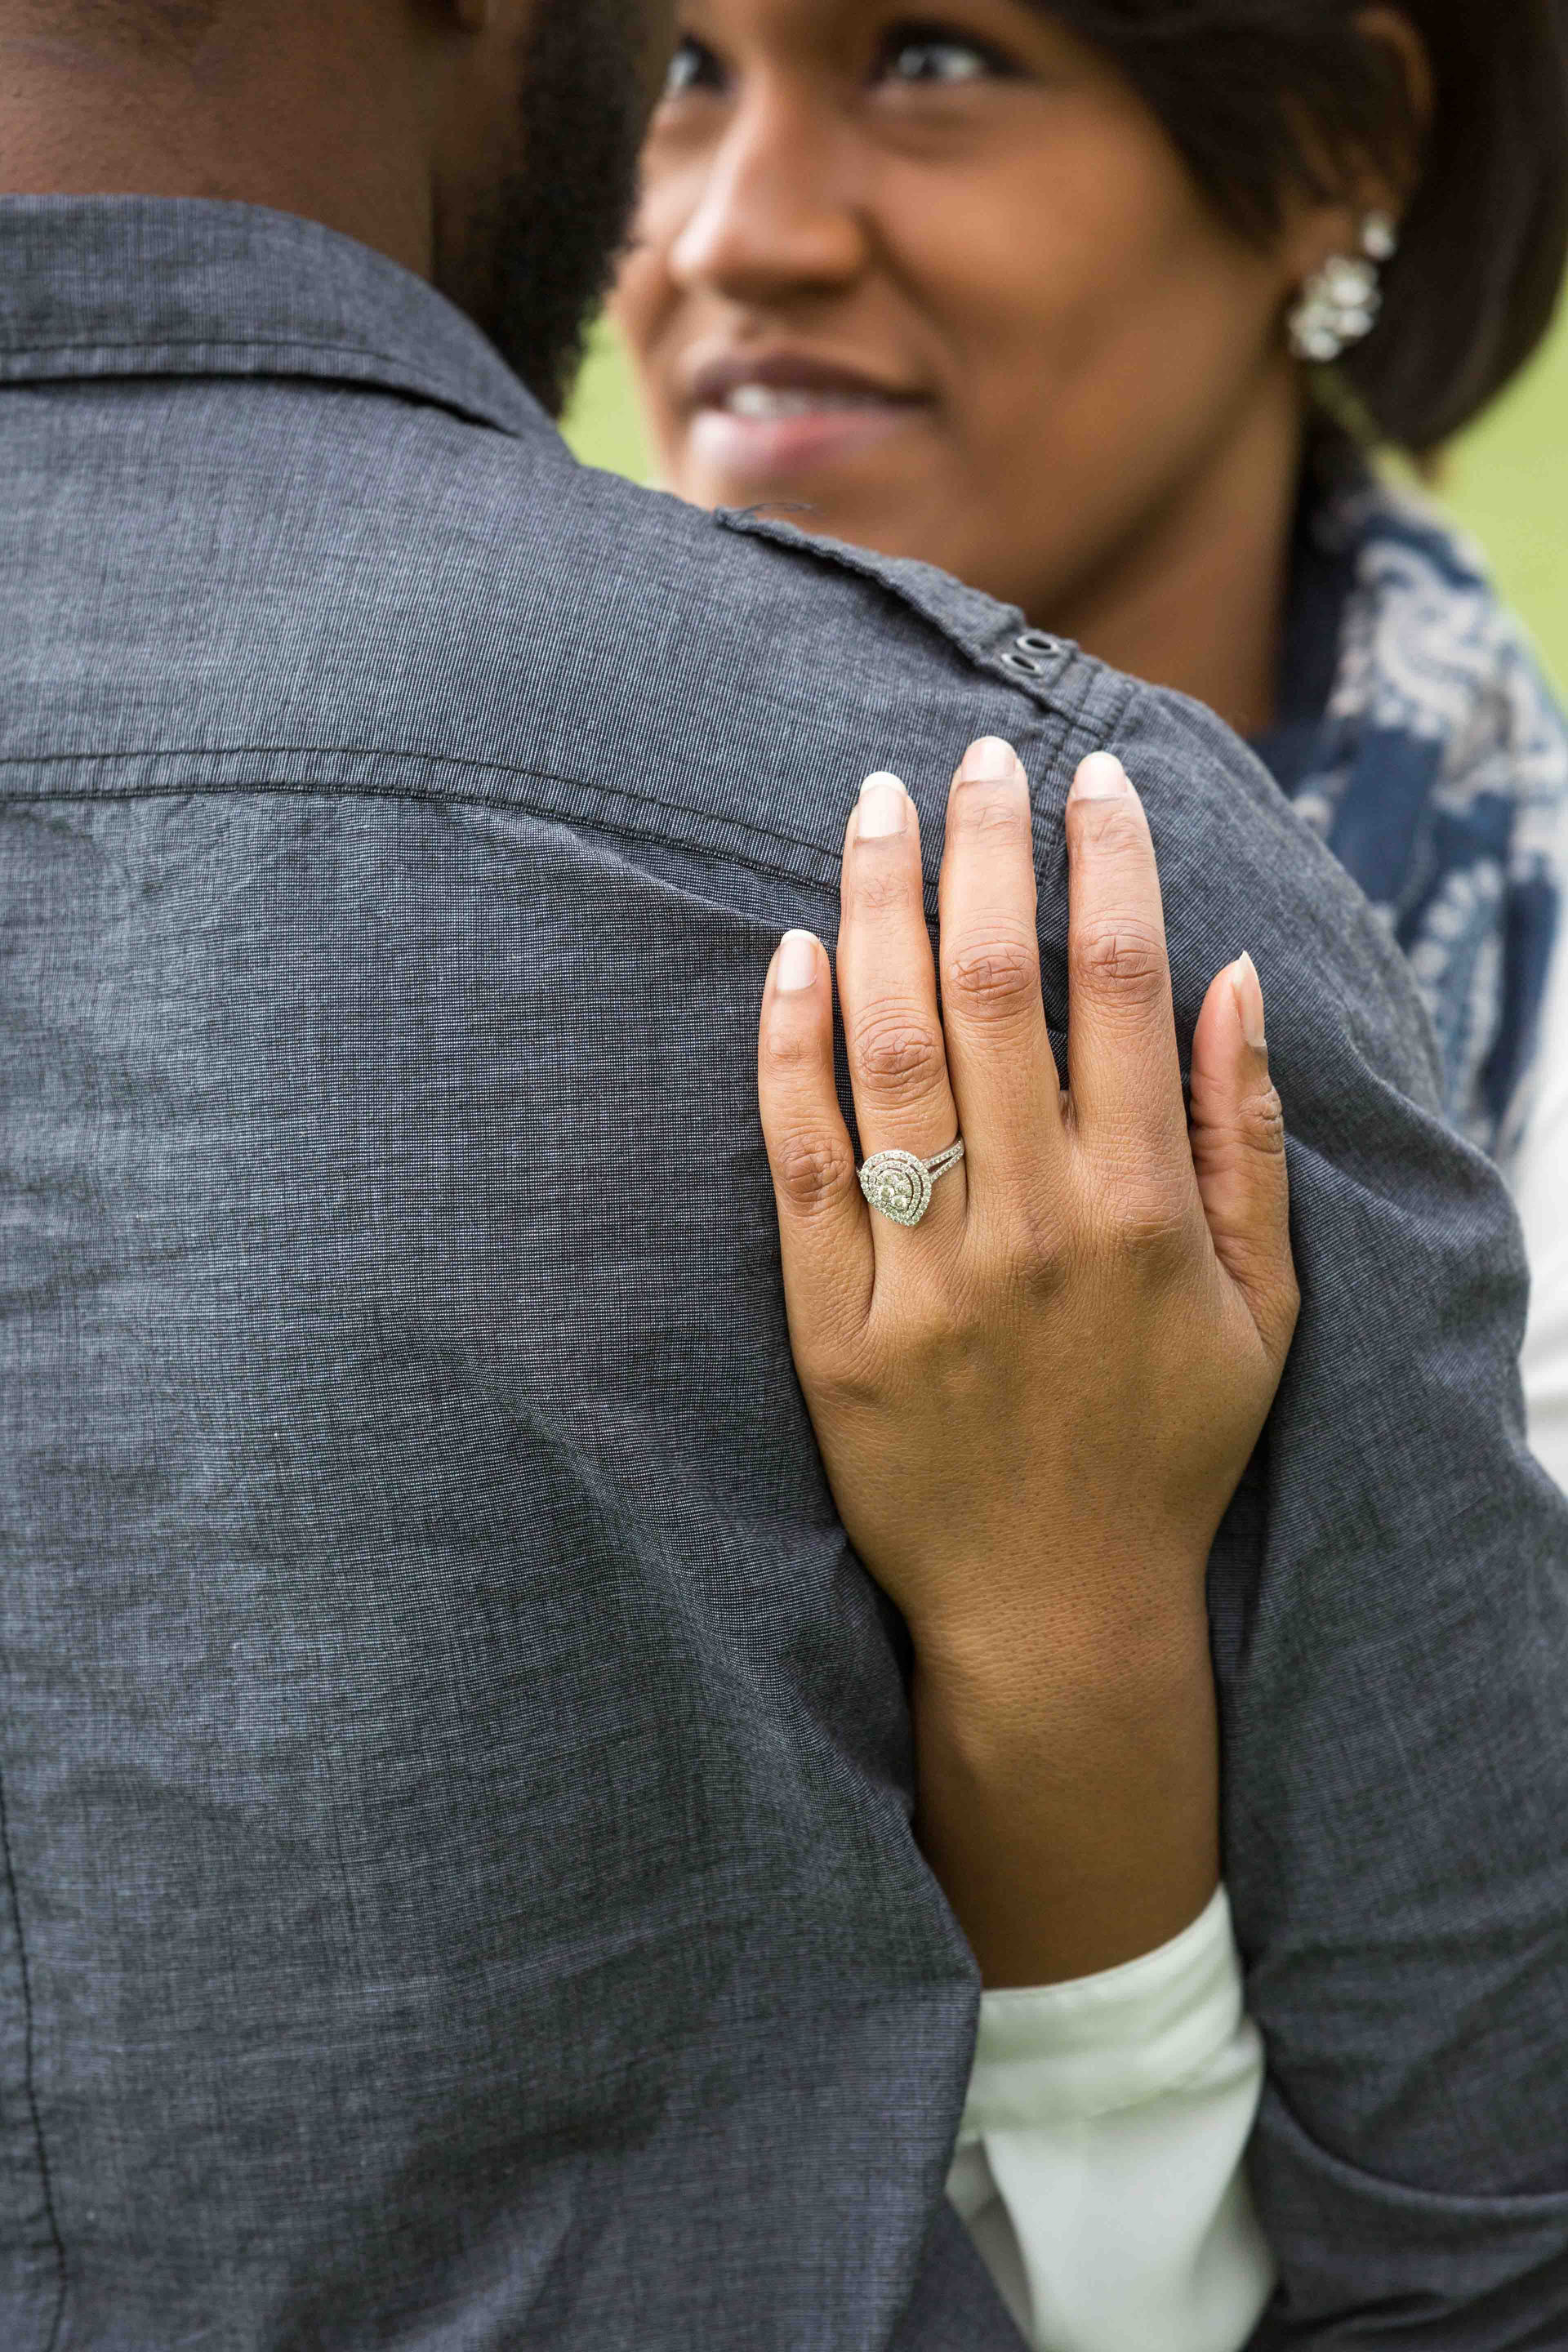 The couple posing during their engagement session in Warrenton, VA.